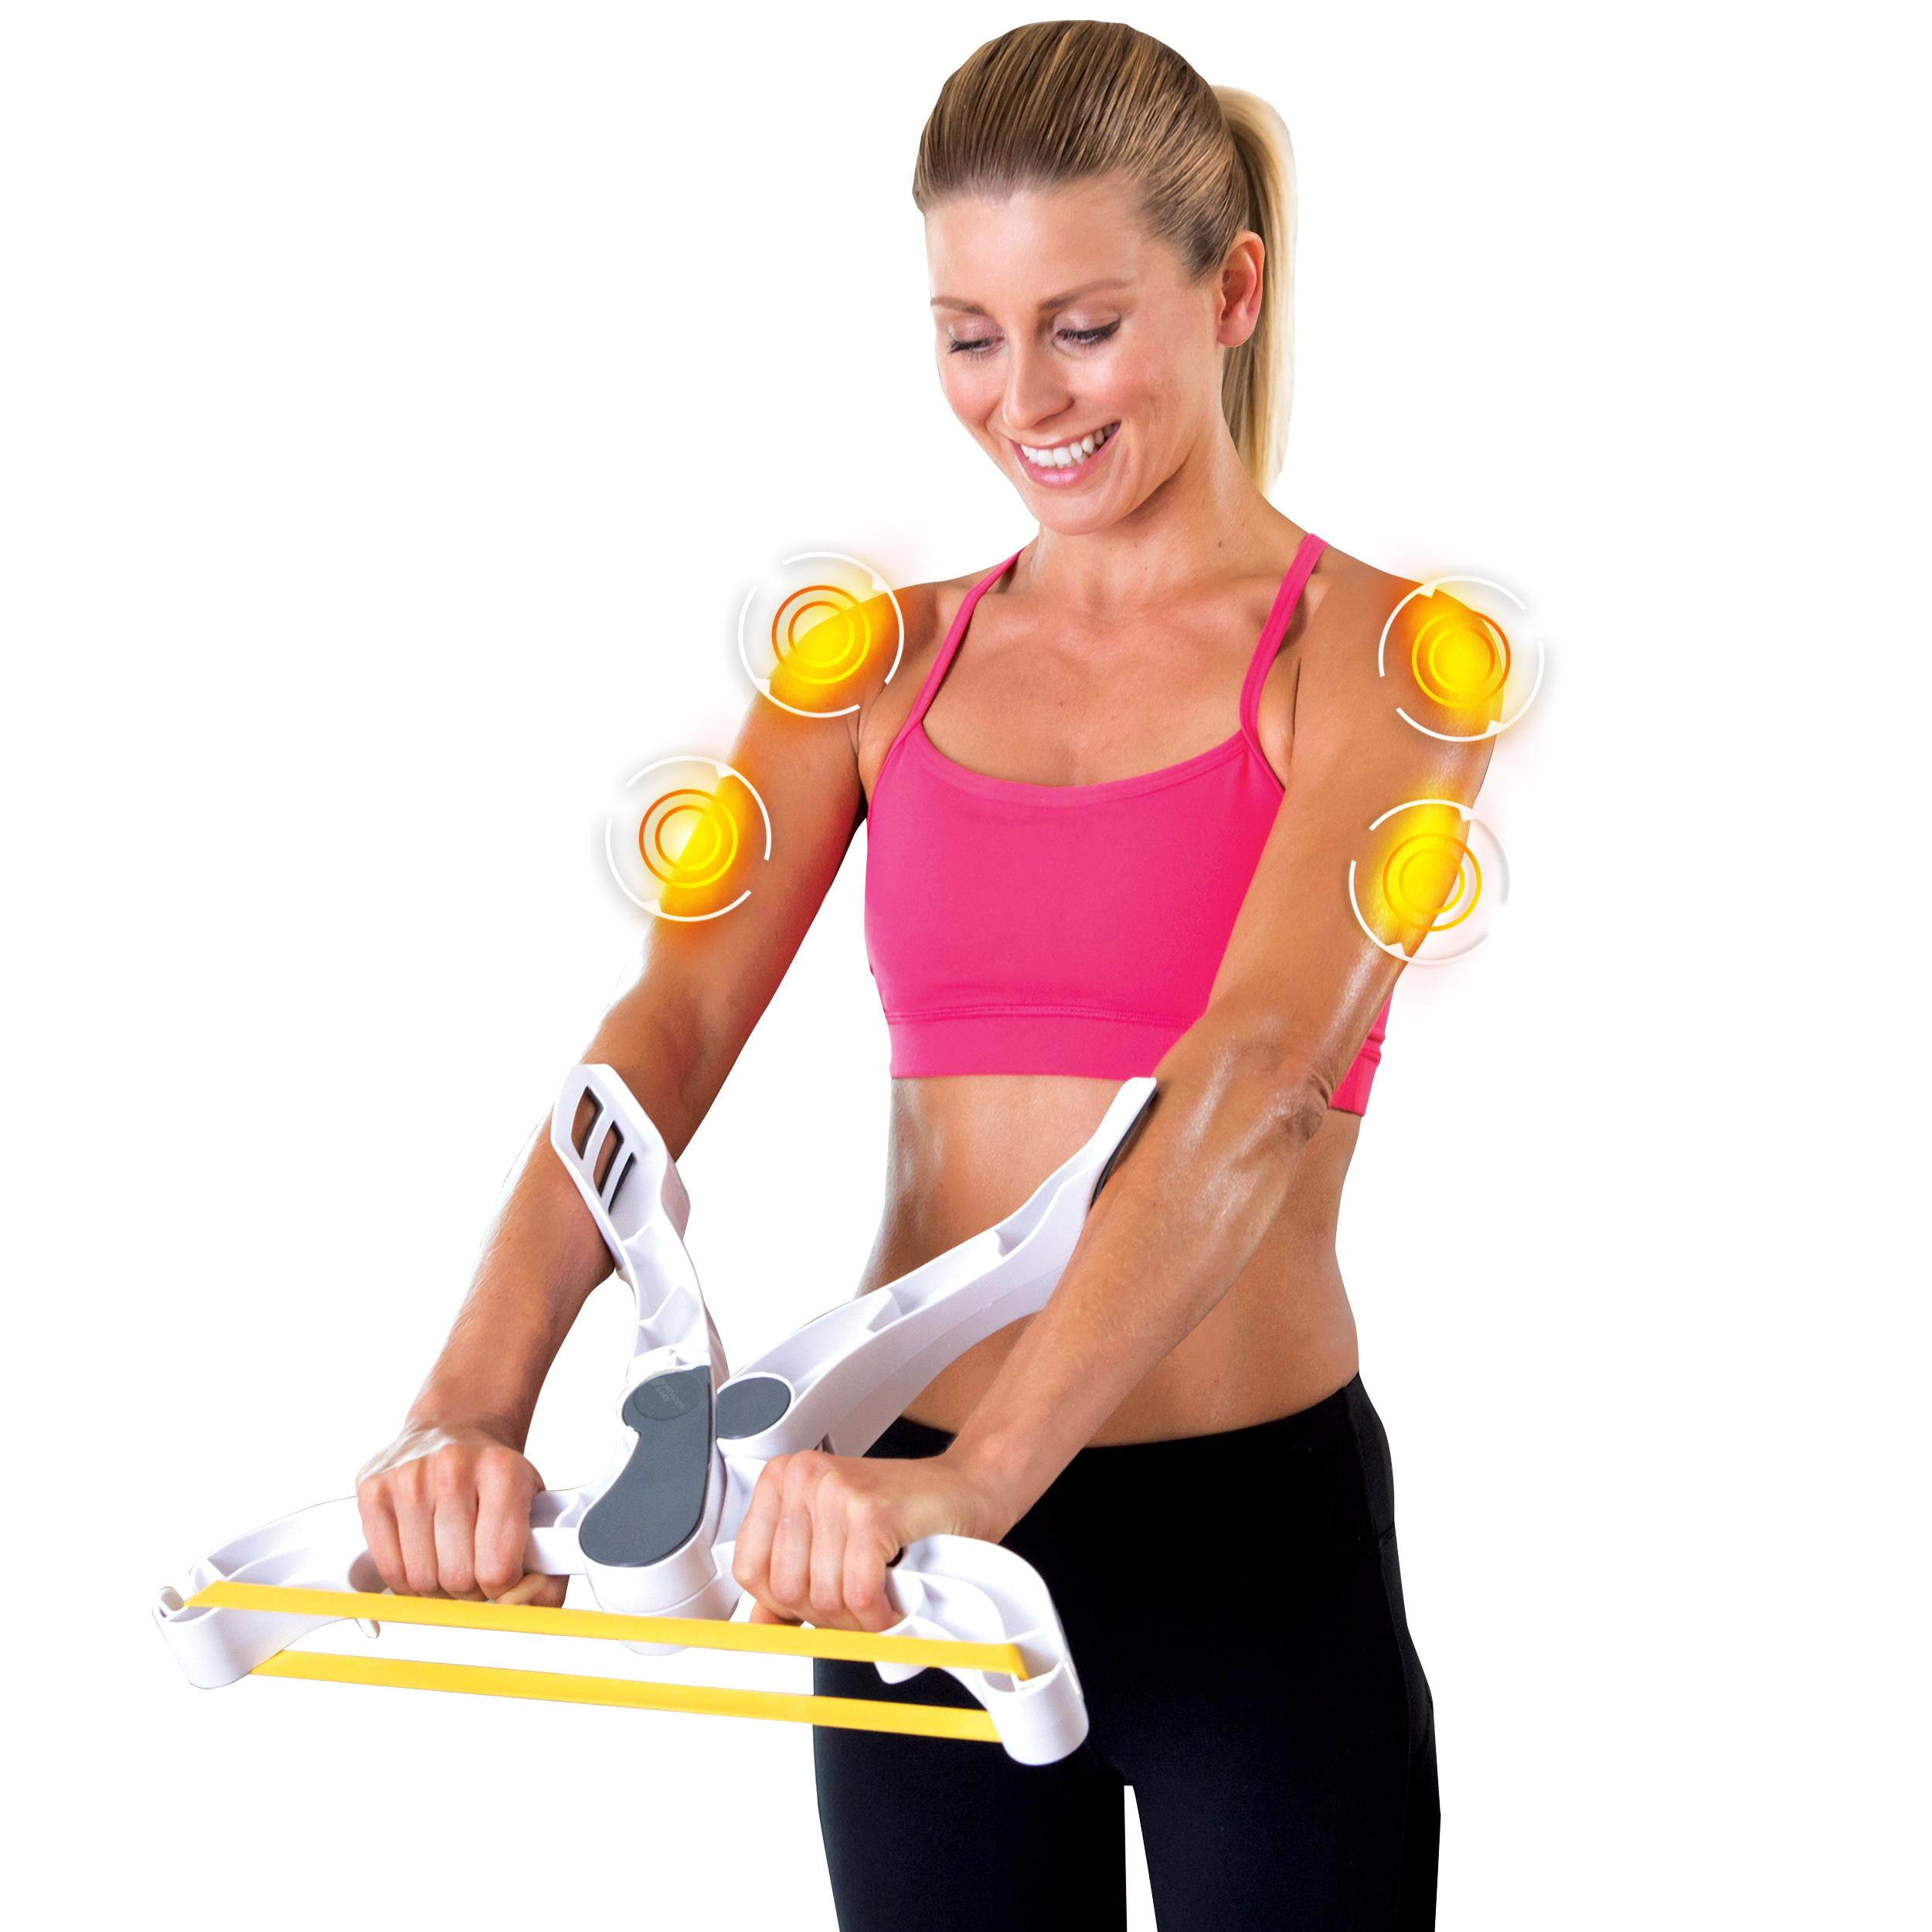 Exercise Bands Exercises Arms: Amazon.com : Wonder Arms Total Workout System Resistance